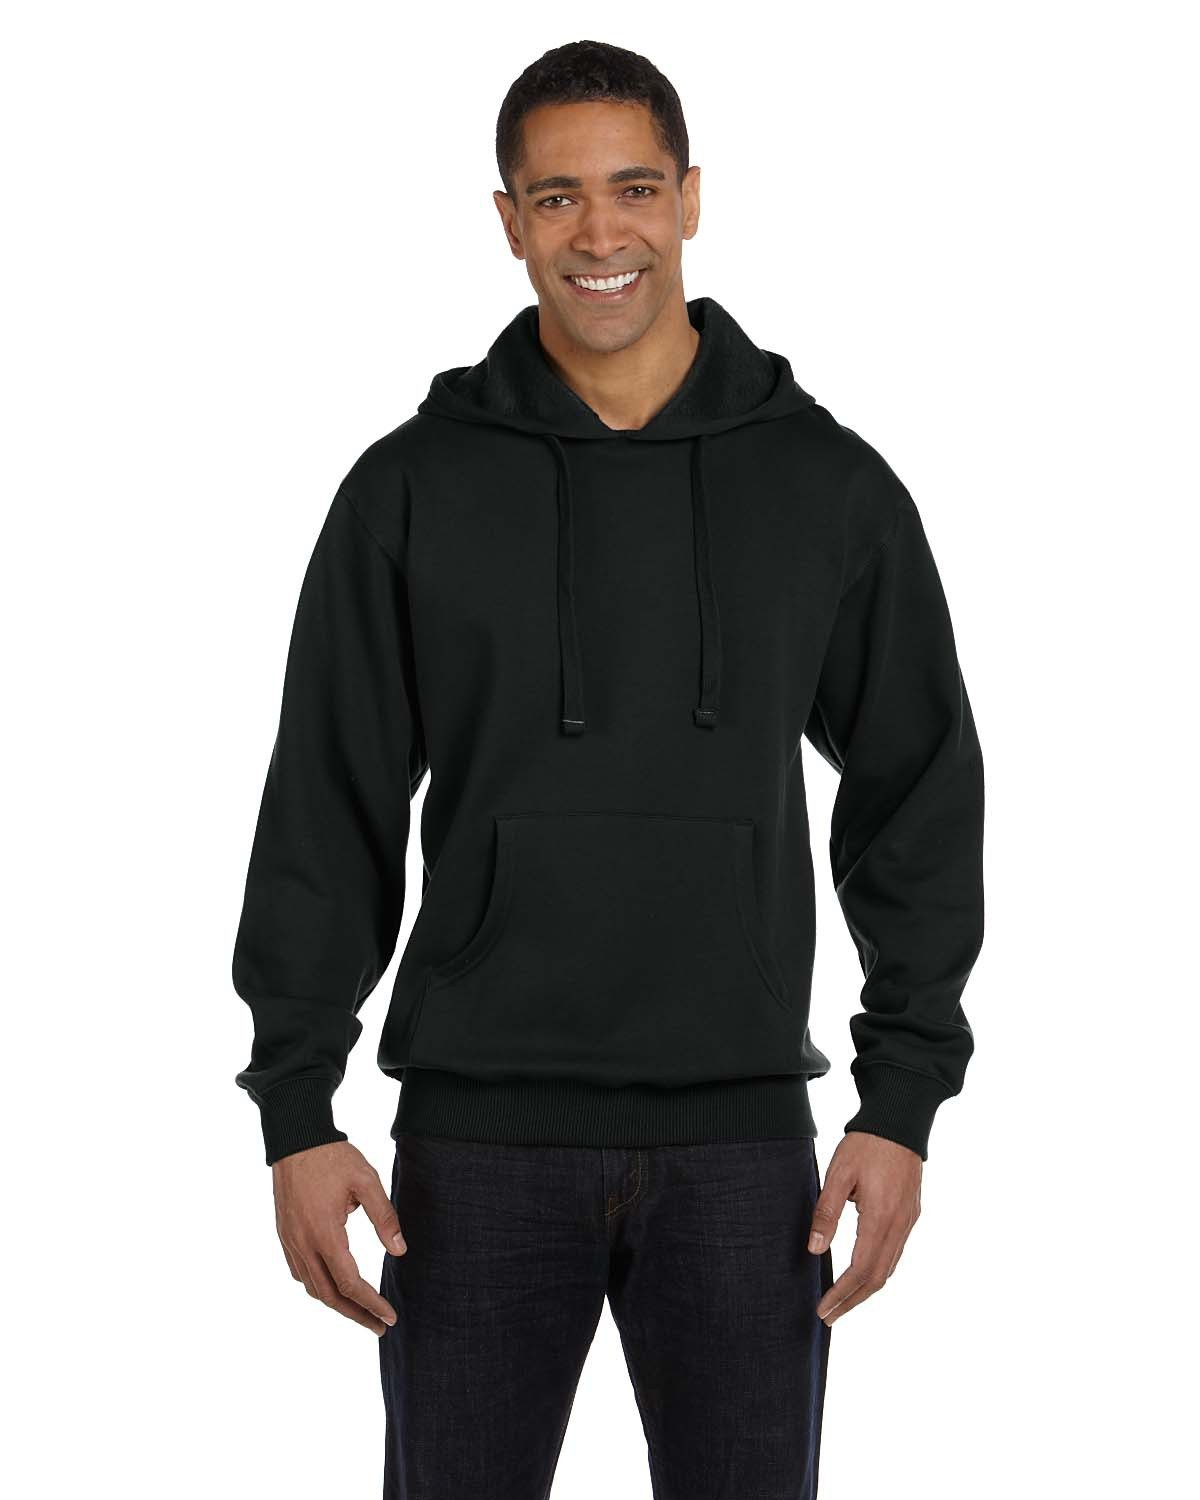 econscious Adult Organic/Recycled Pullover Hooded Sweatshirt BLACK